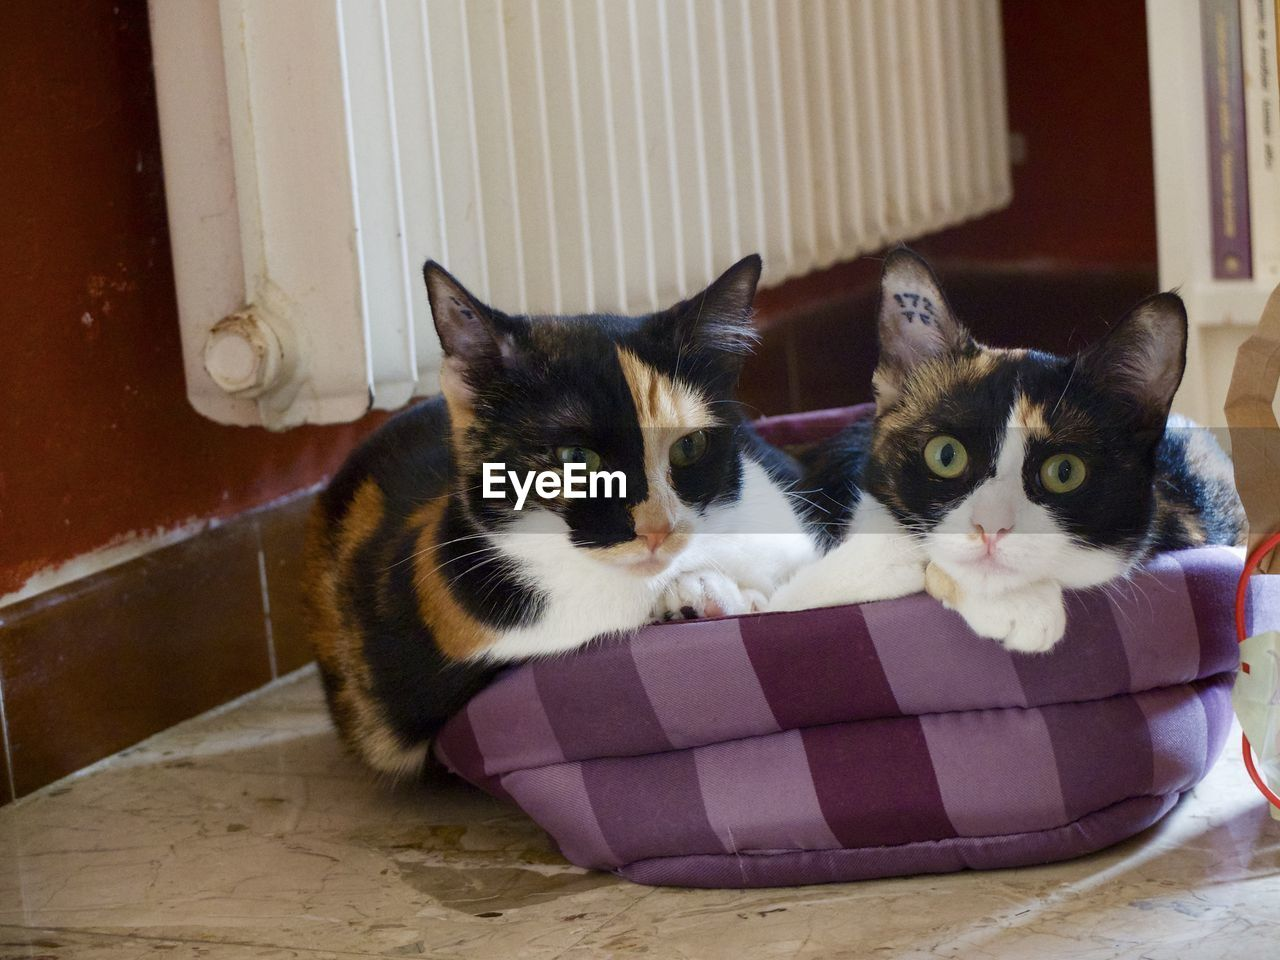 Cats relaxing in pet bed at home